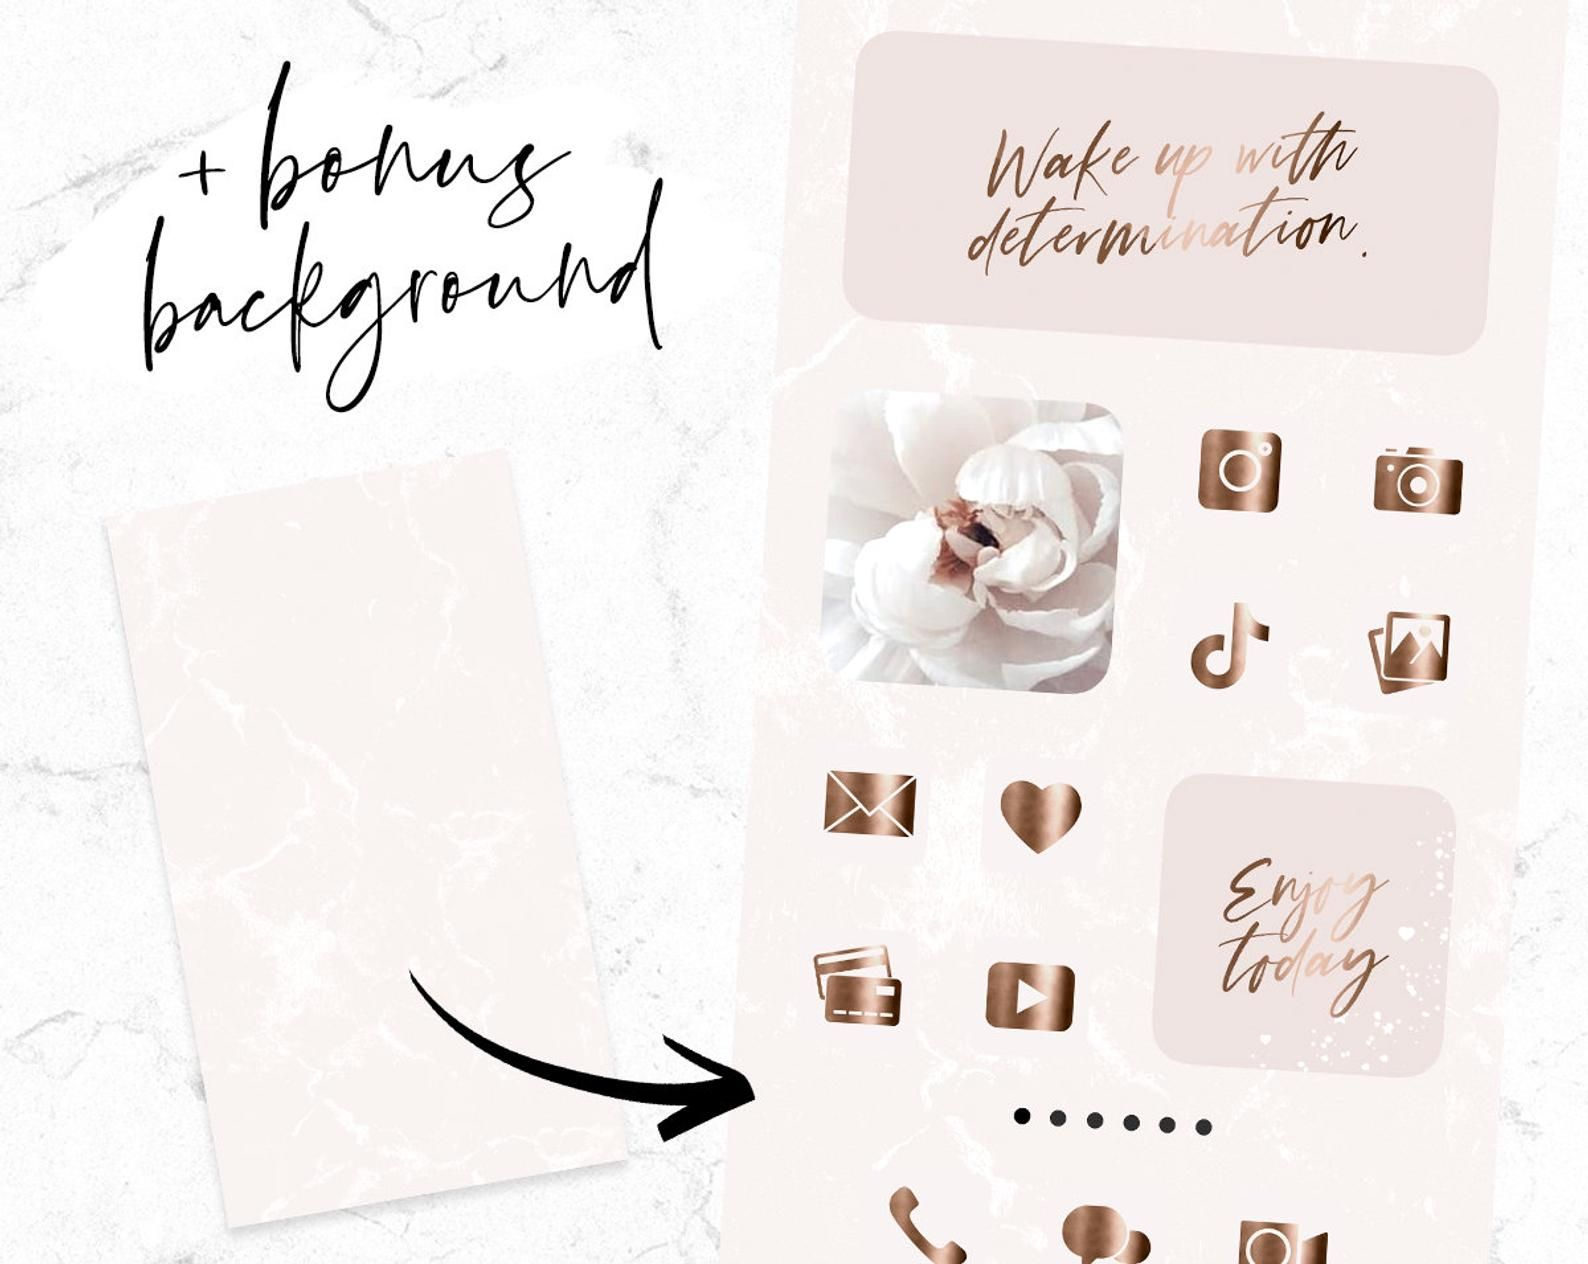 App Icons Rose Gold - IOS 14 Blush Pink App Covers